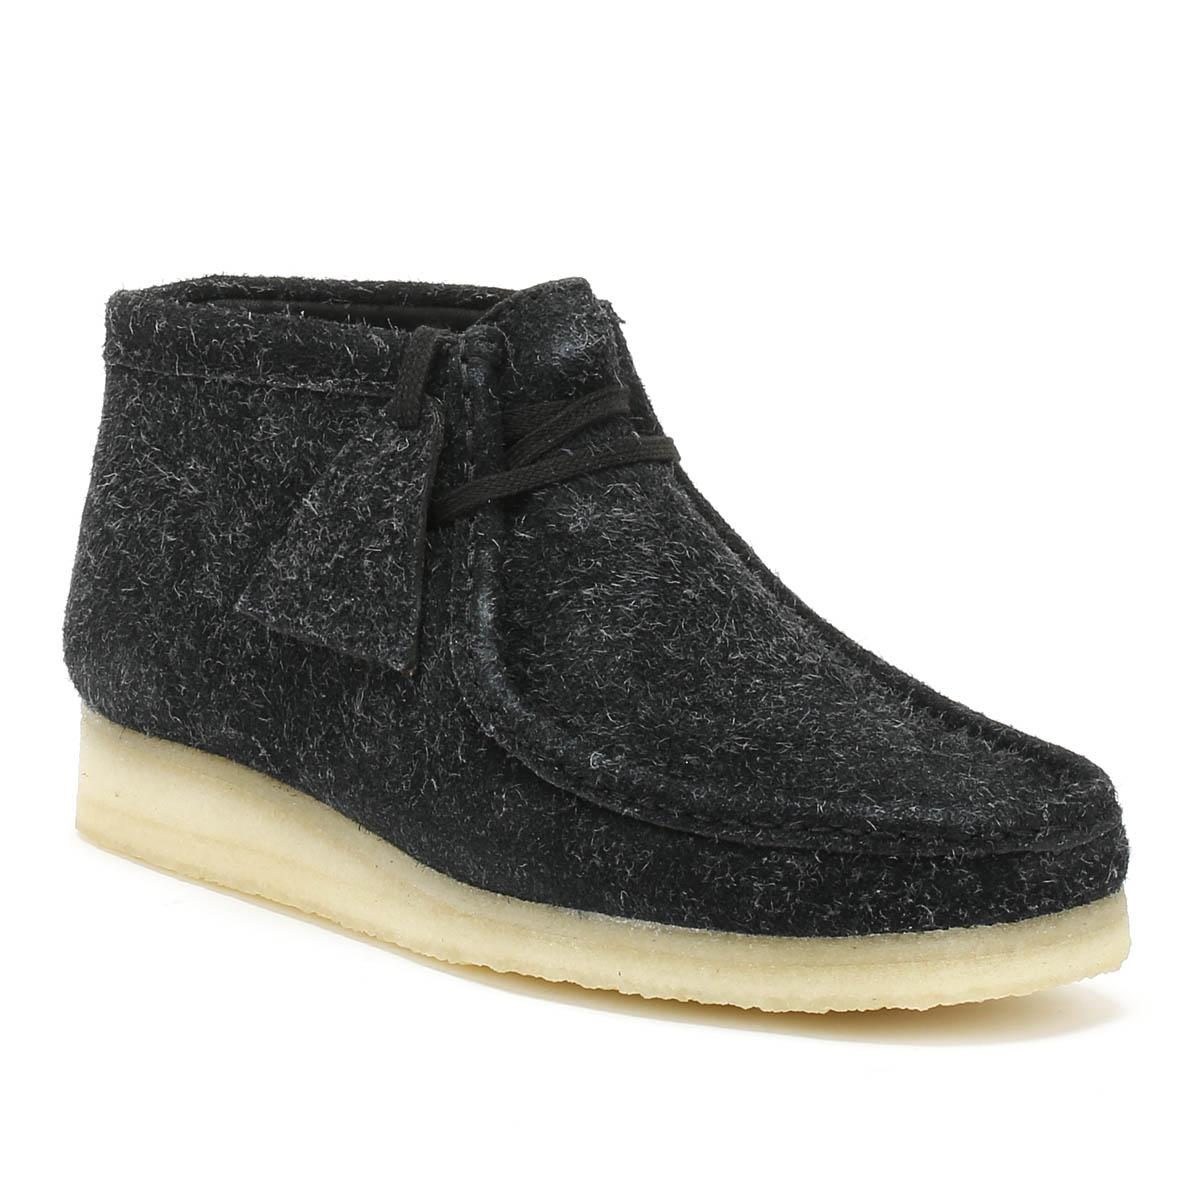 Clarks. Originals Womens Black Interest Wallabee Boots